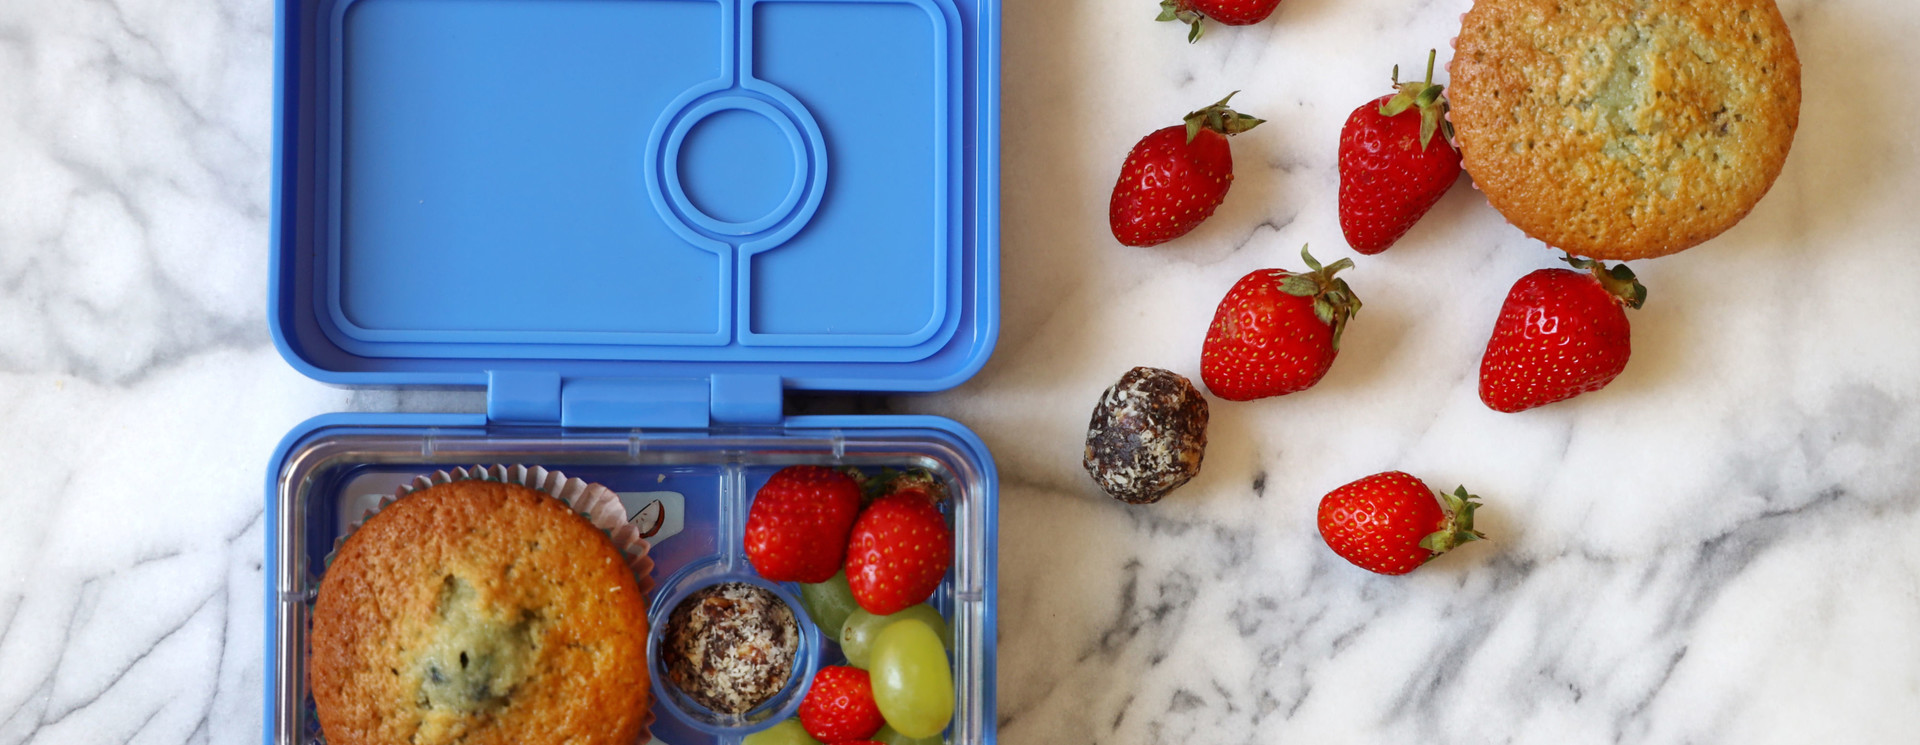 Yumbox Minisnack lunch box